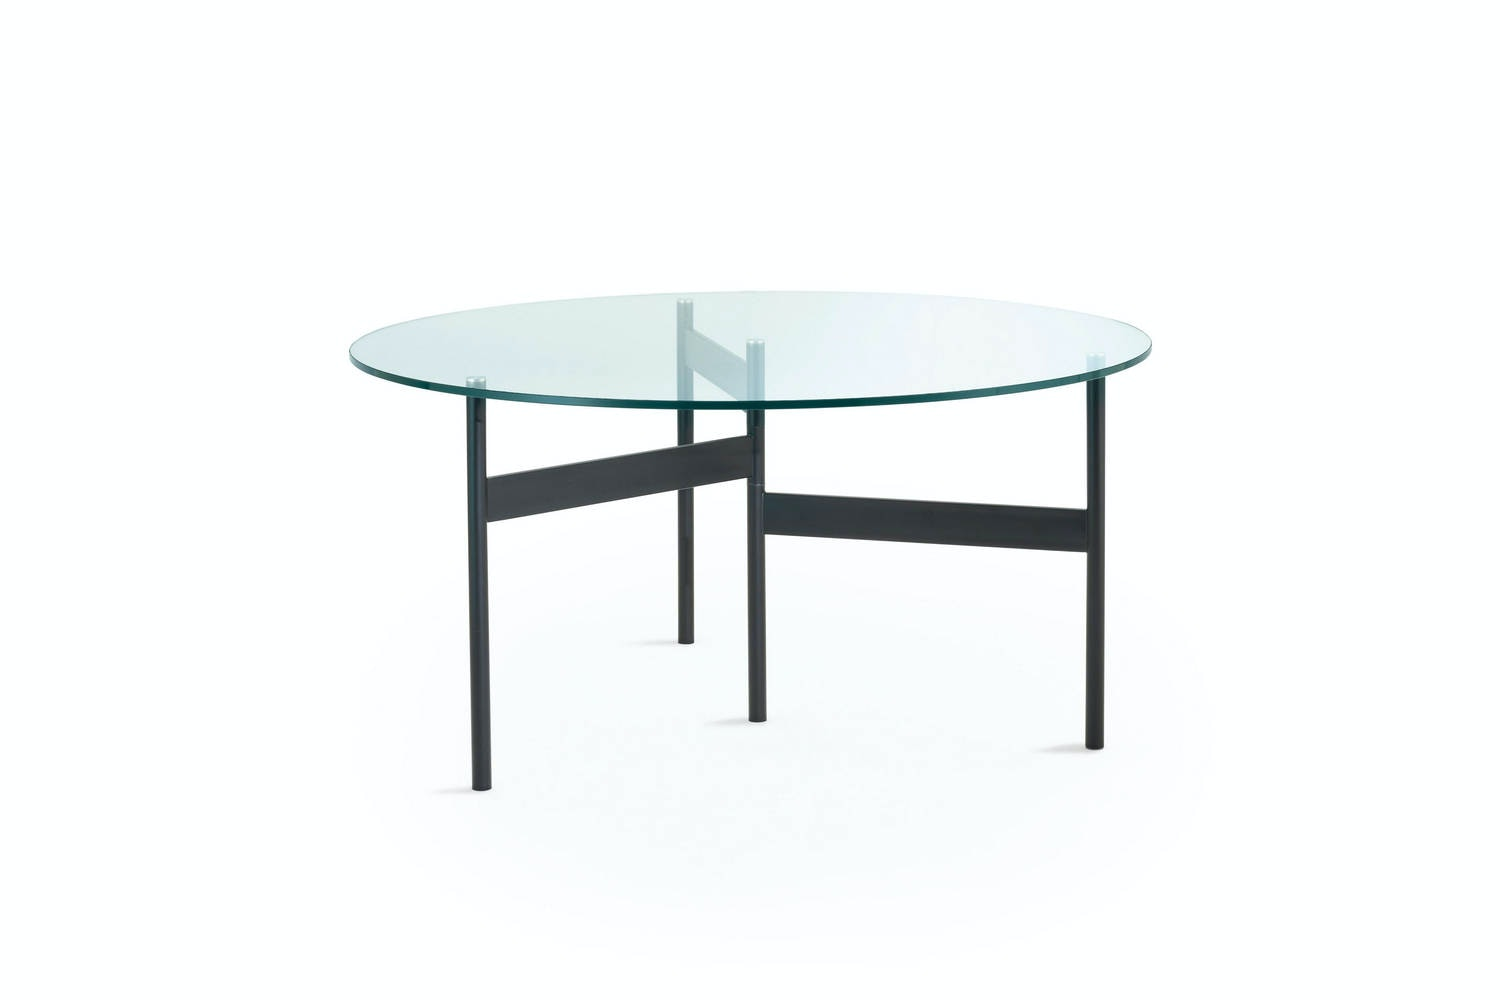 Notes Table by Massimo Mariani for Living Divani